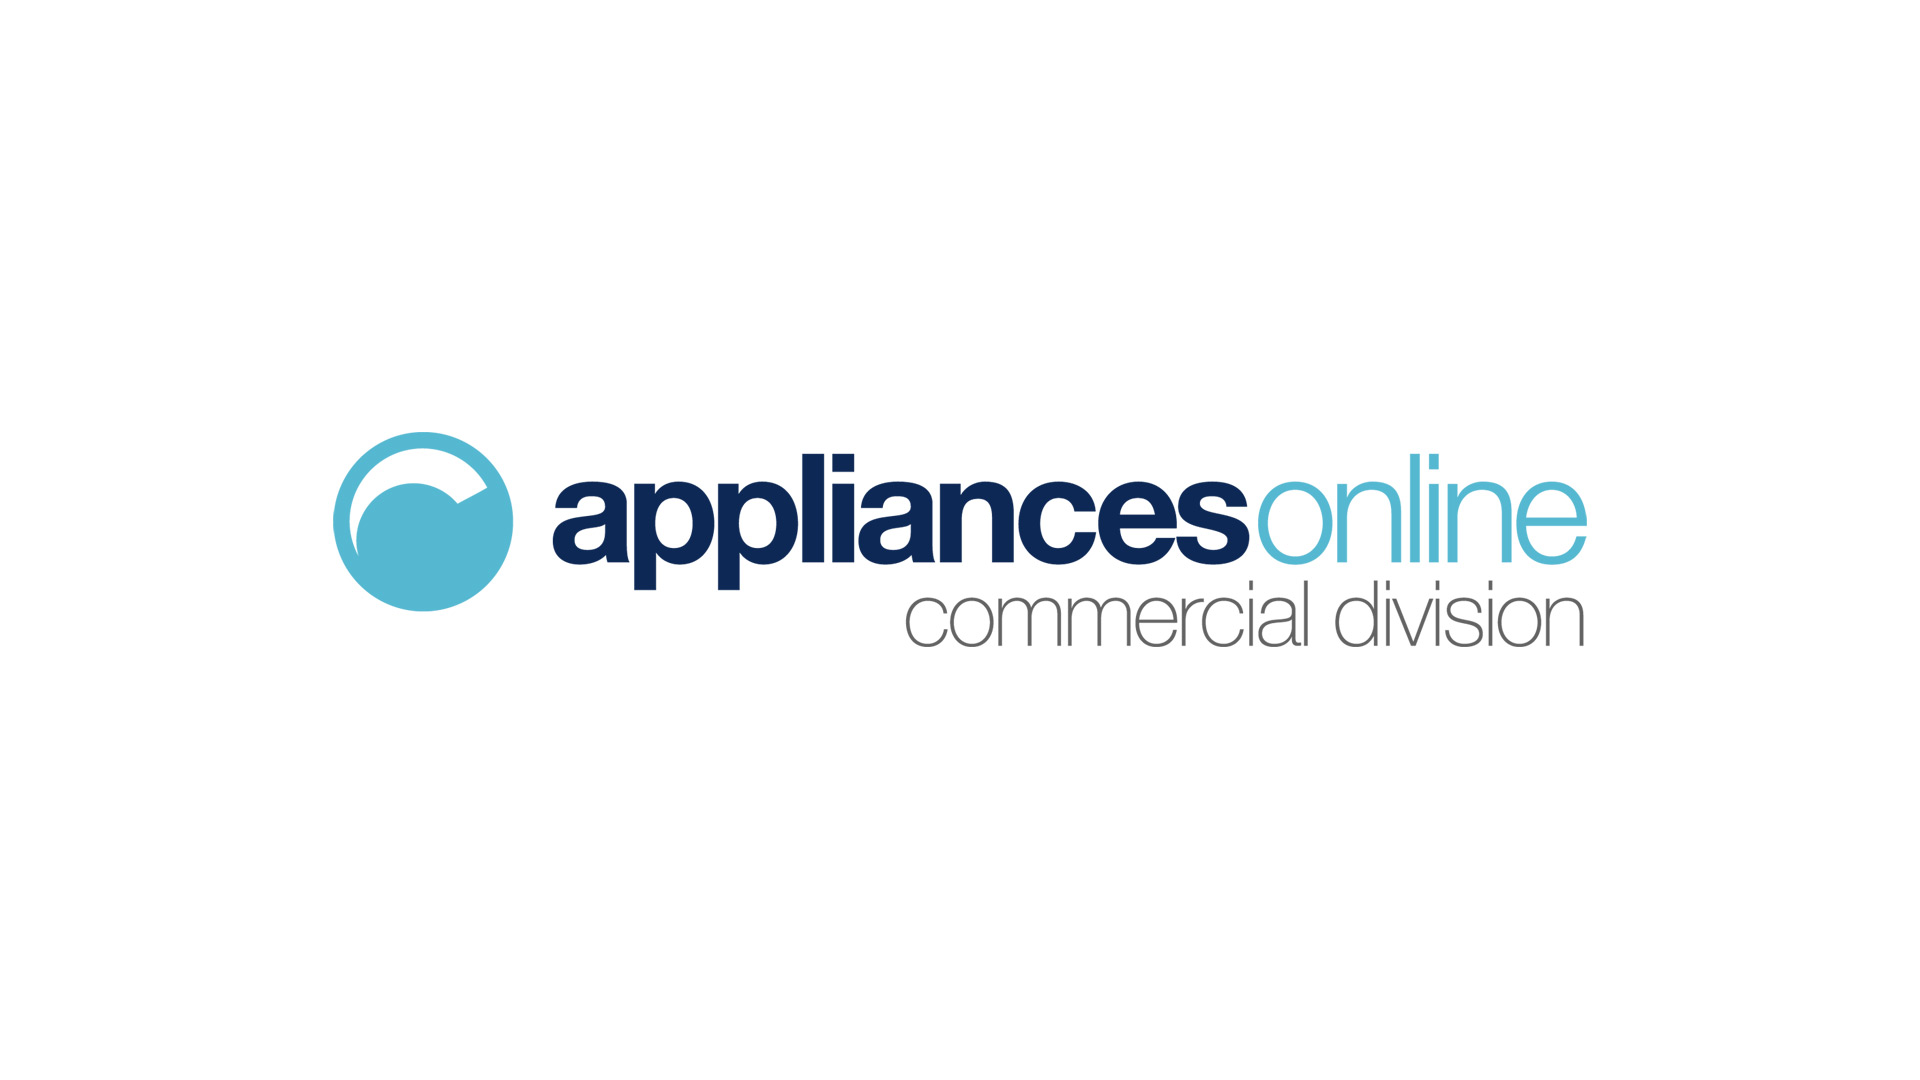 Appliances Online Commercial